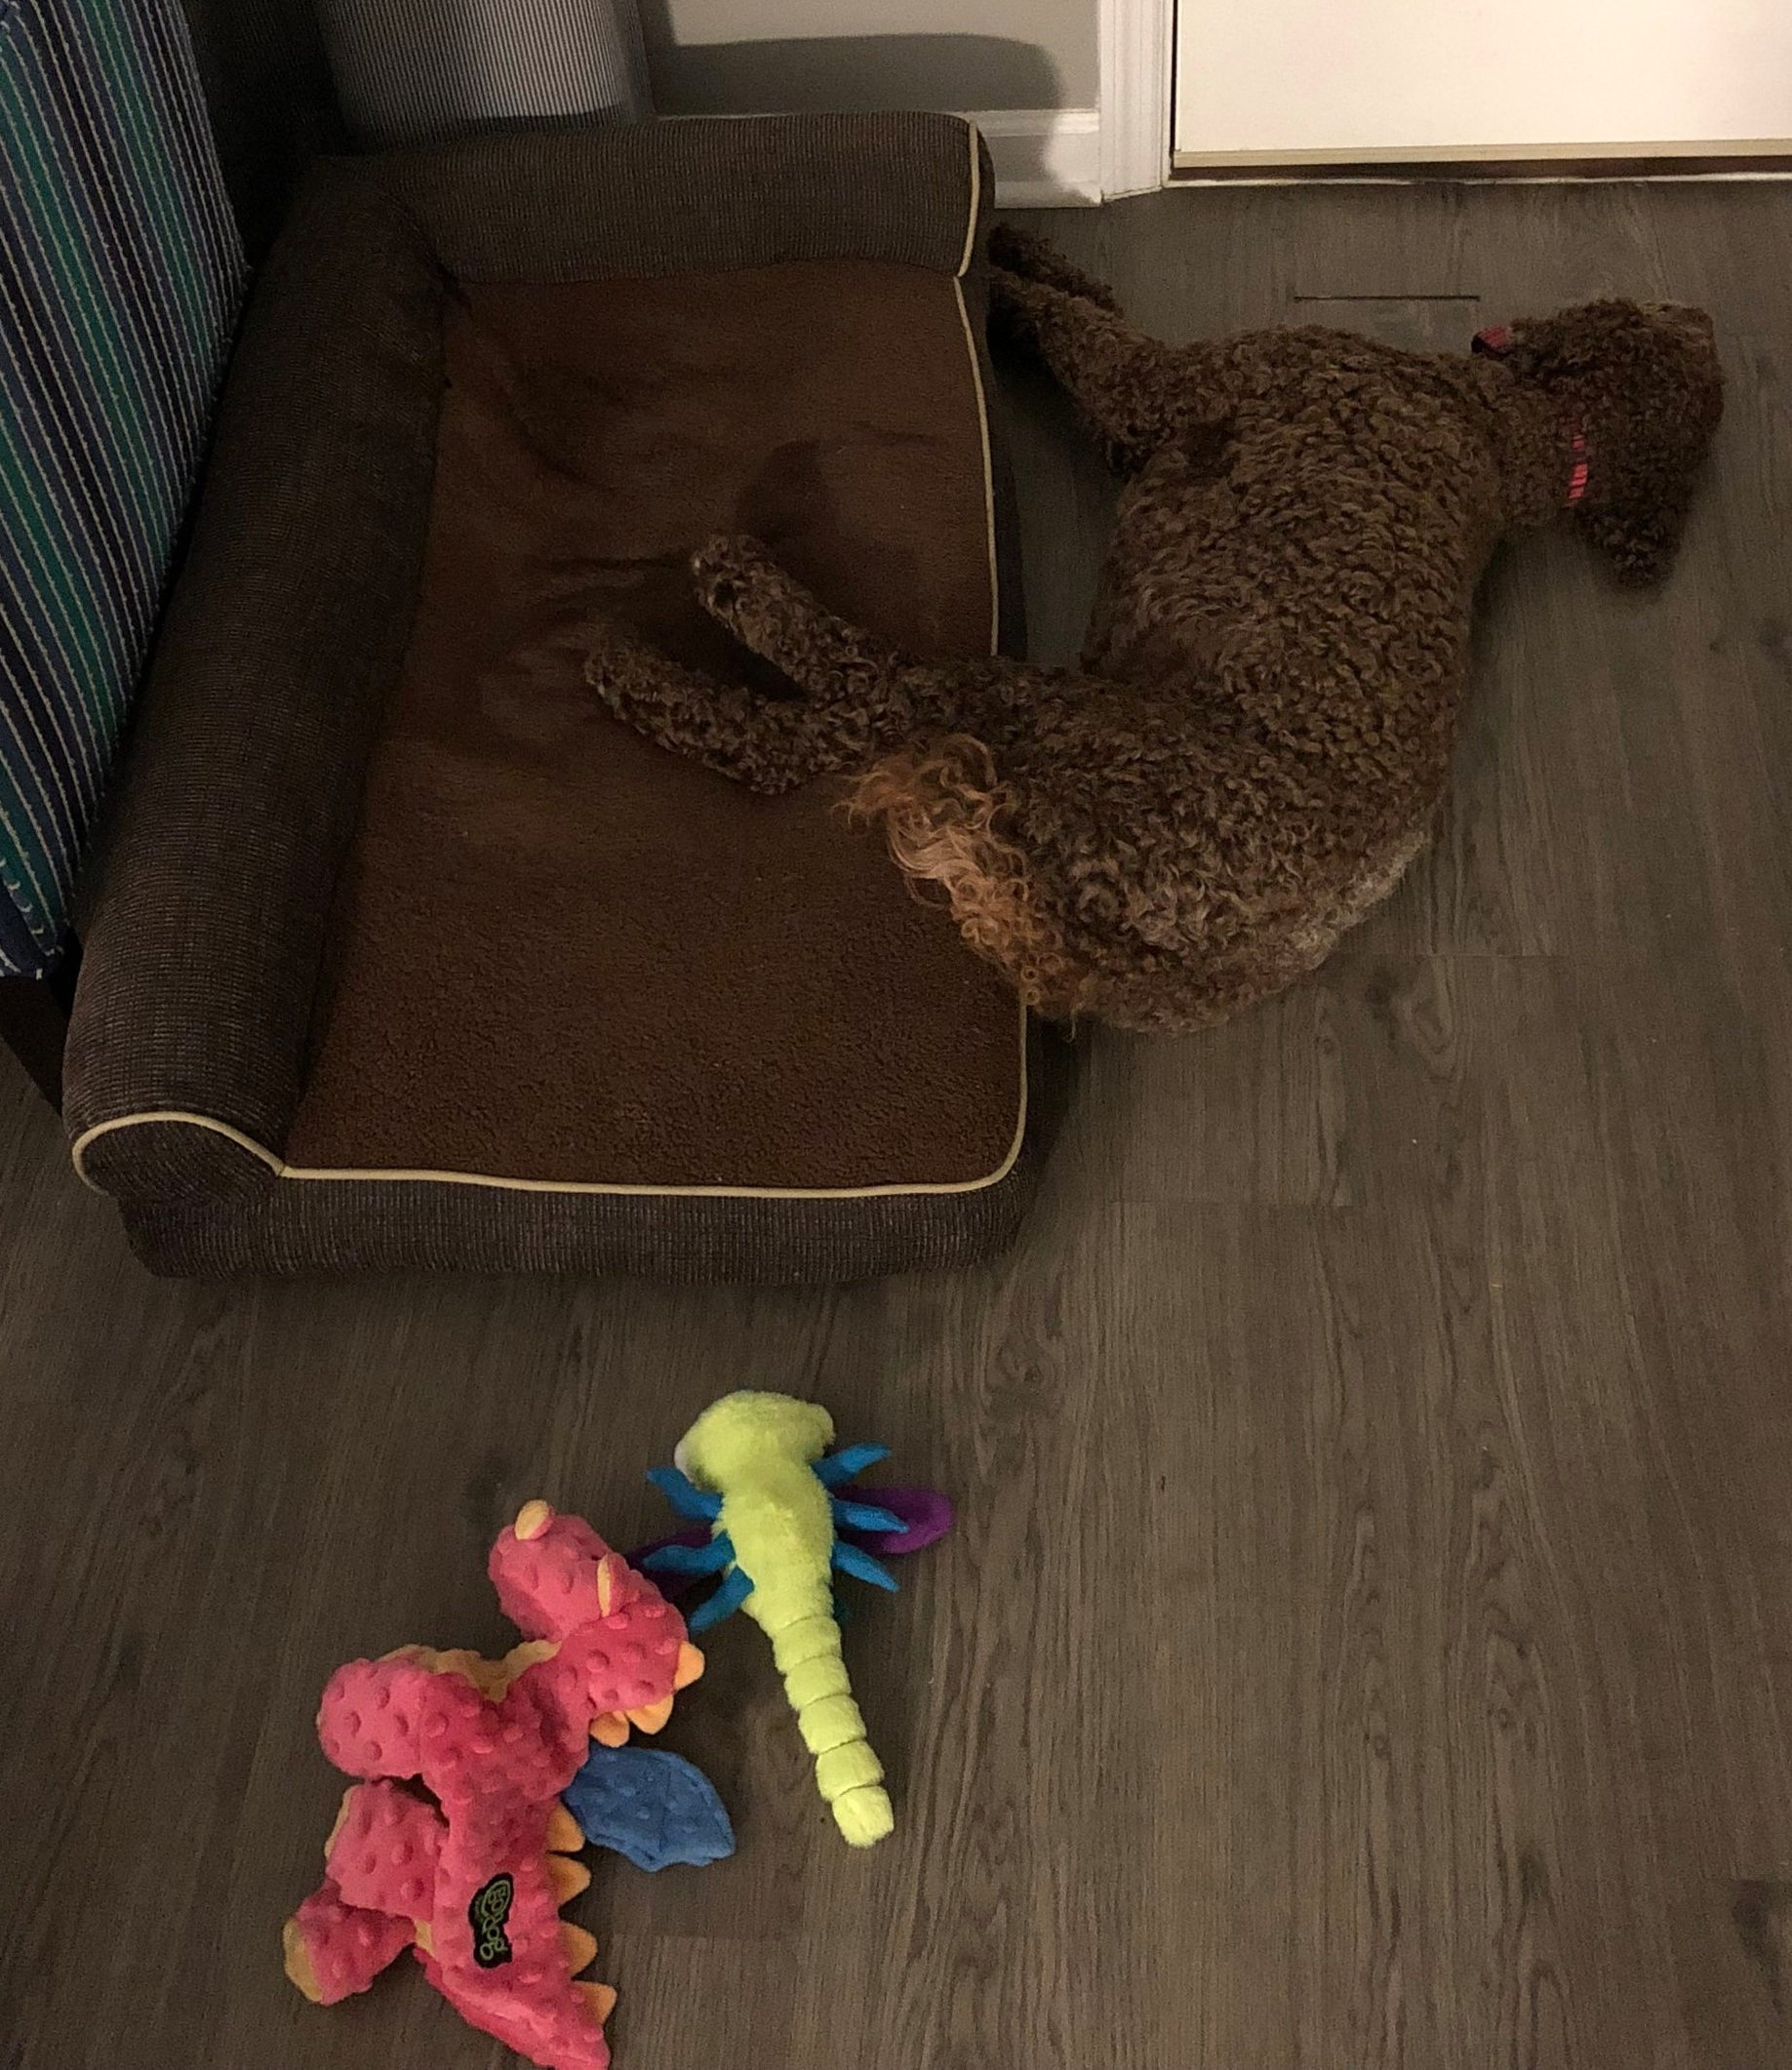 I almost made it to my bed after a long day of playing with my new toys.